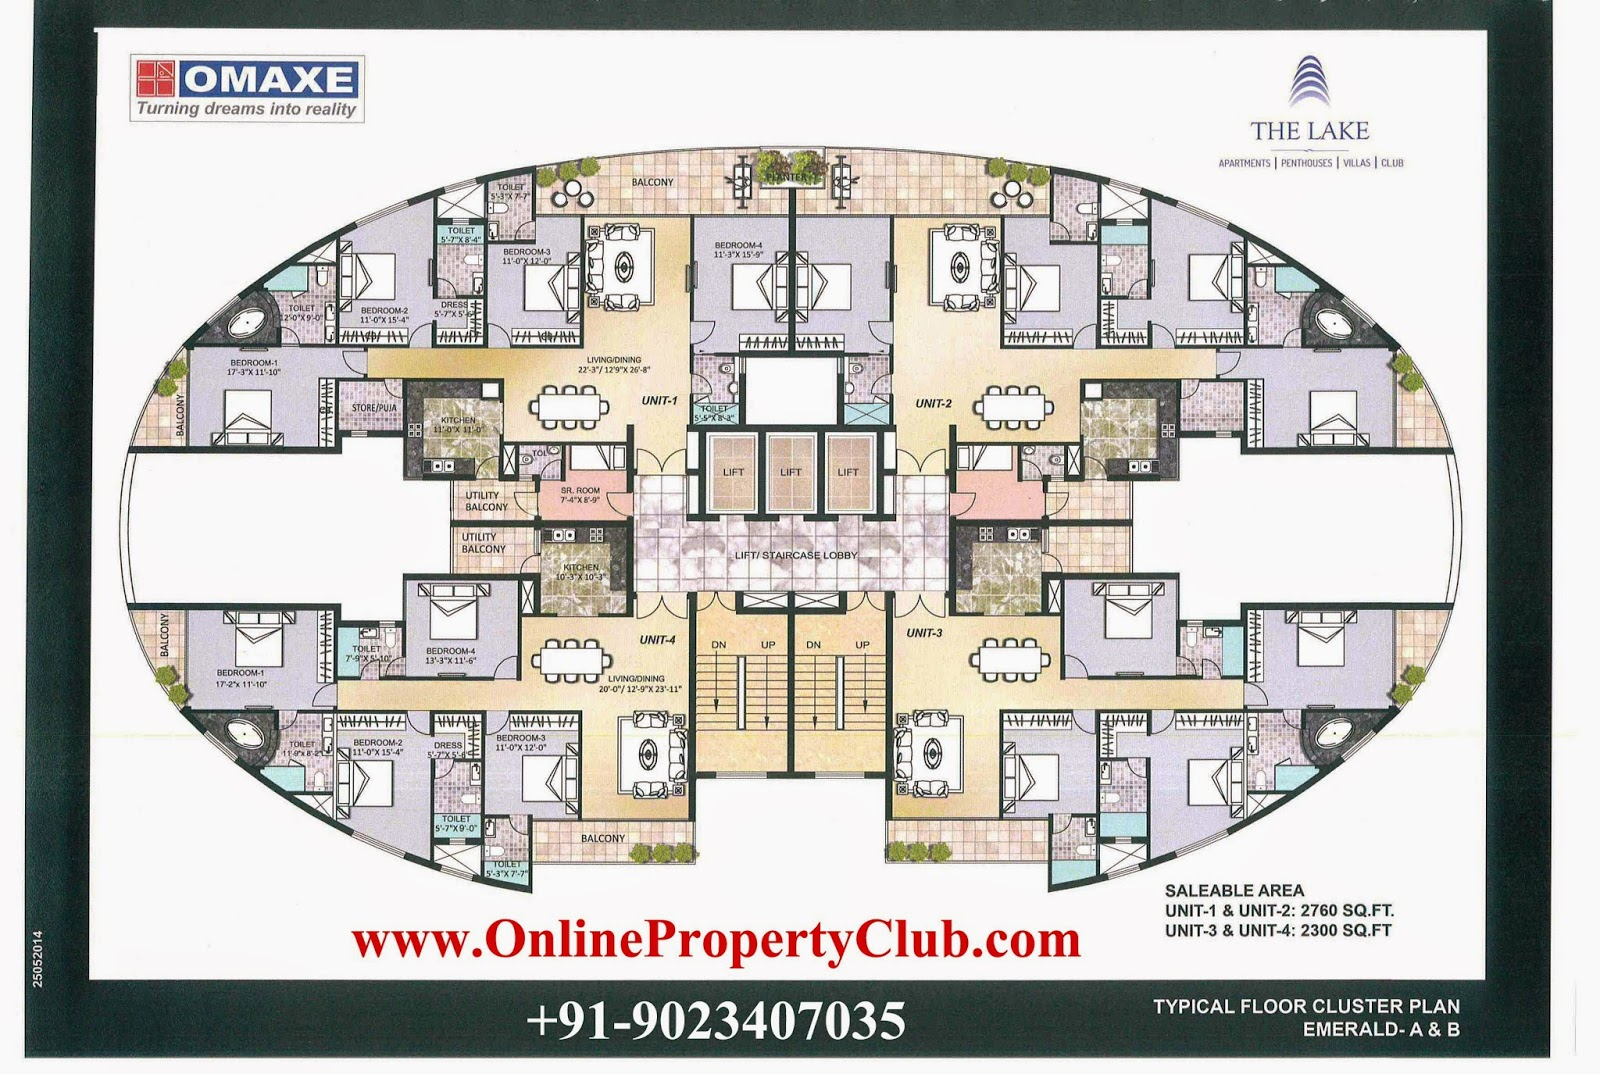 `The Lake - 2,3,4 BHK Flats Apartments in Omaxe New Chandigarh Mullanpur